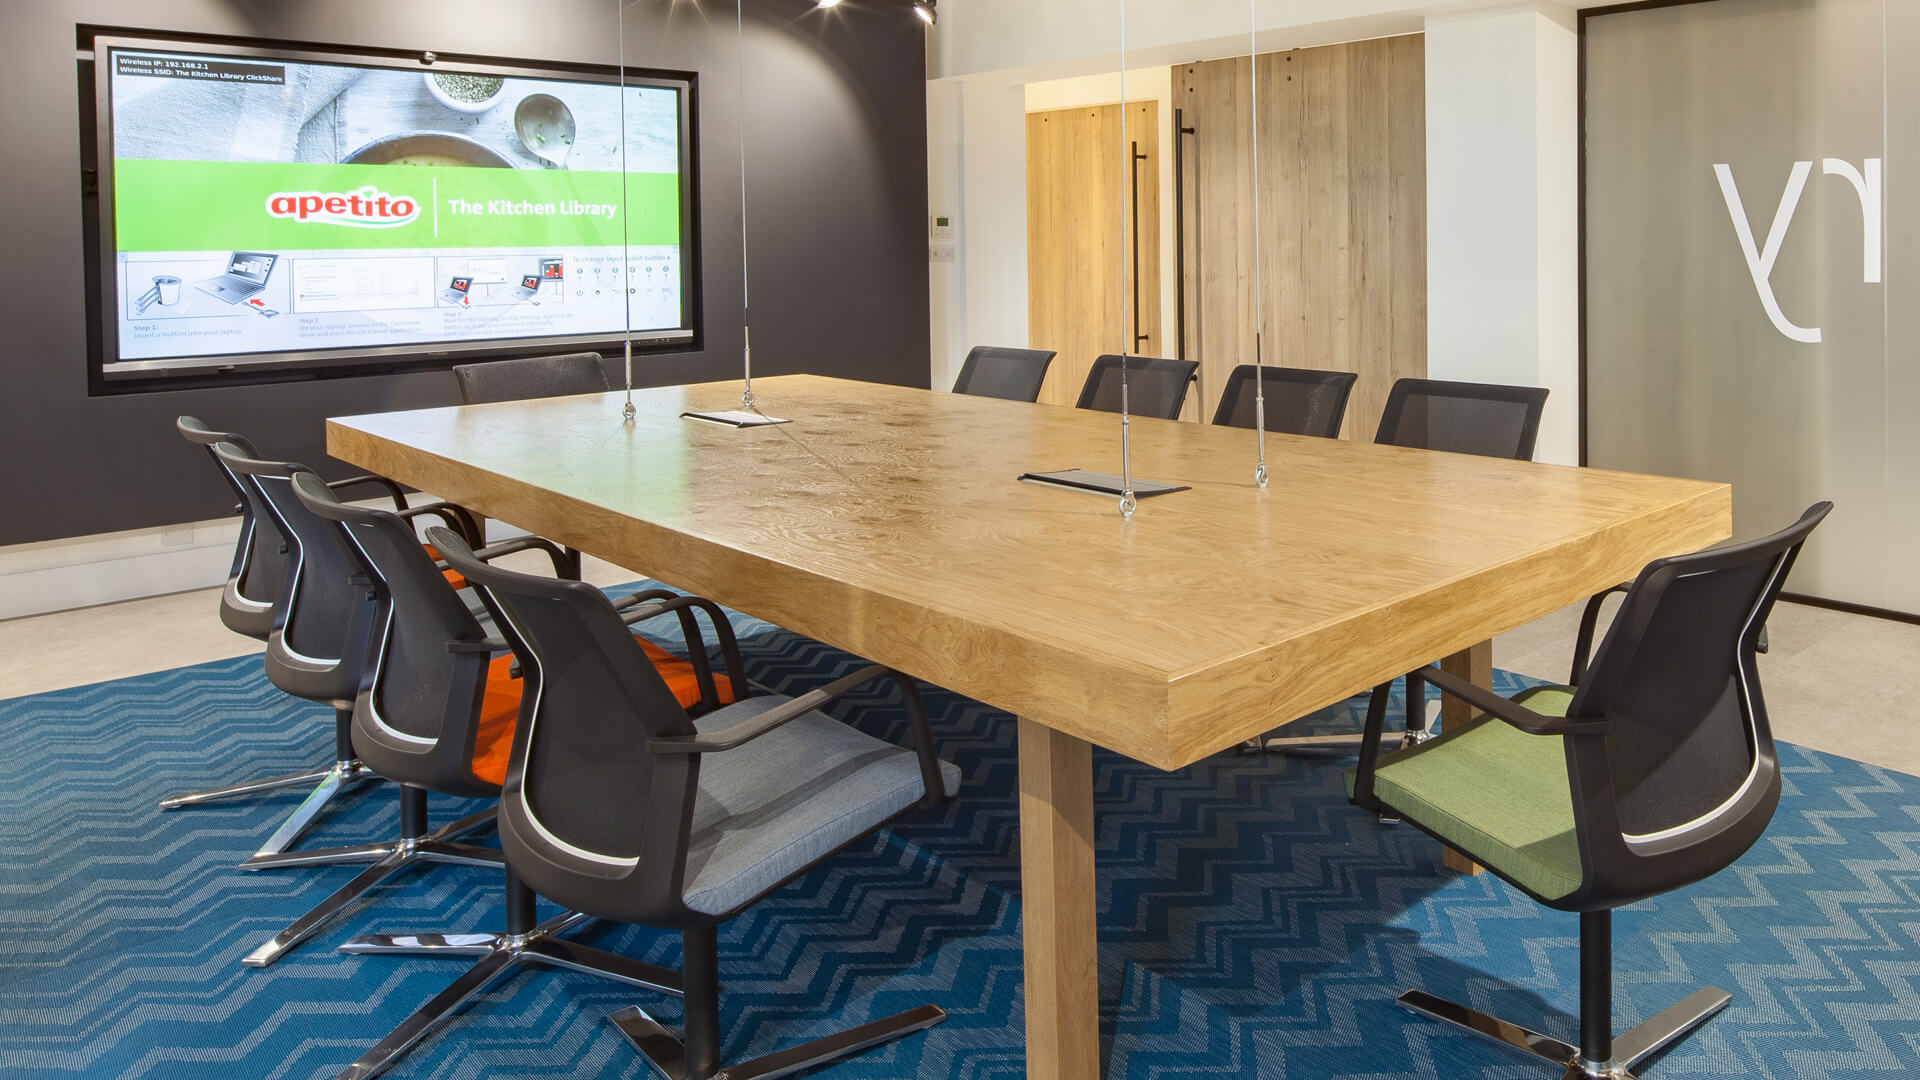 eclipse digital media - digital signage and av solutions - apetito customer visitor centre - boardroom